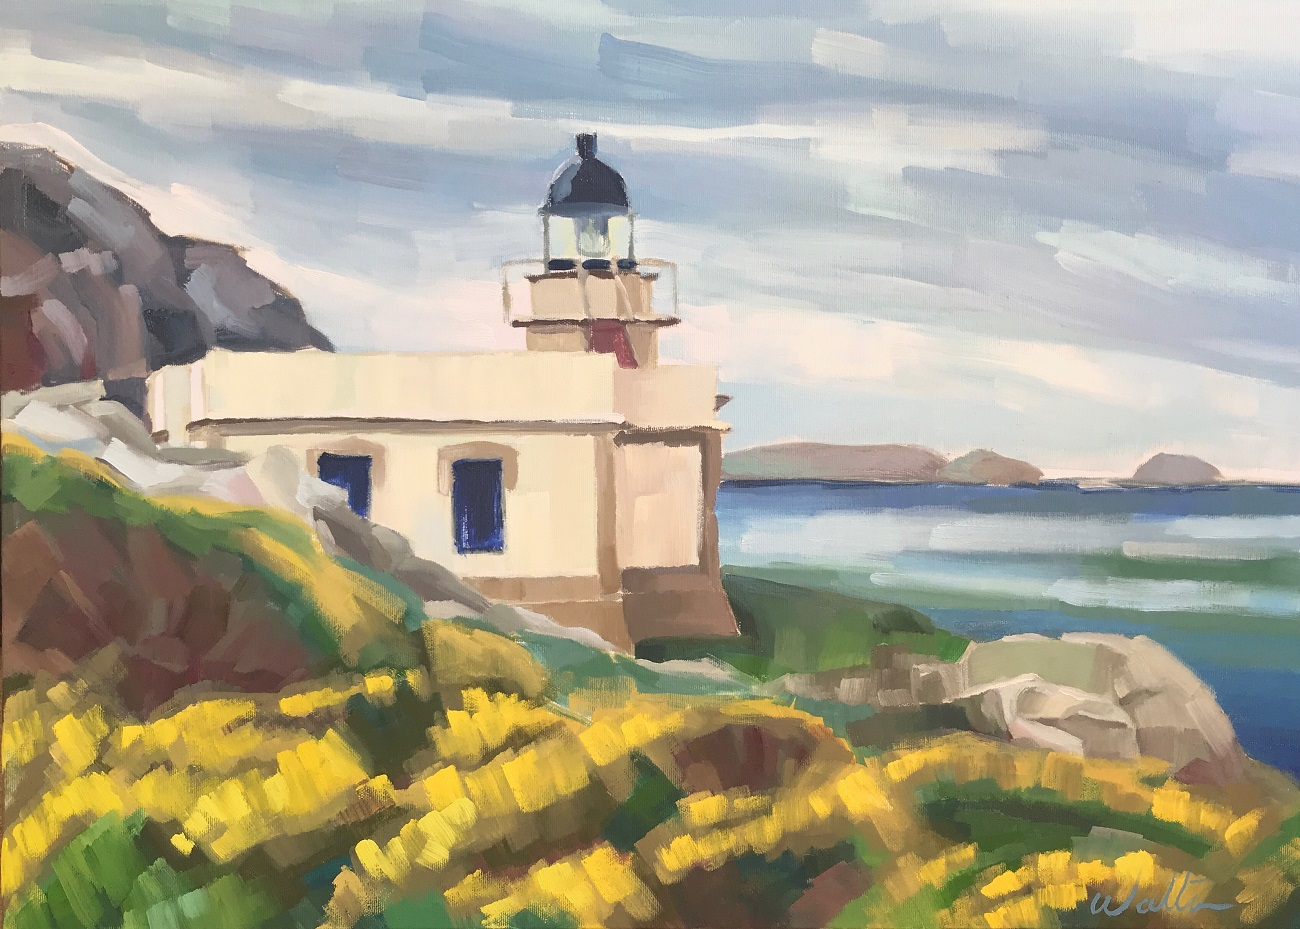 art exhibition, painting lighthouse, faro de cabo prior, Galicia